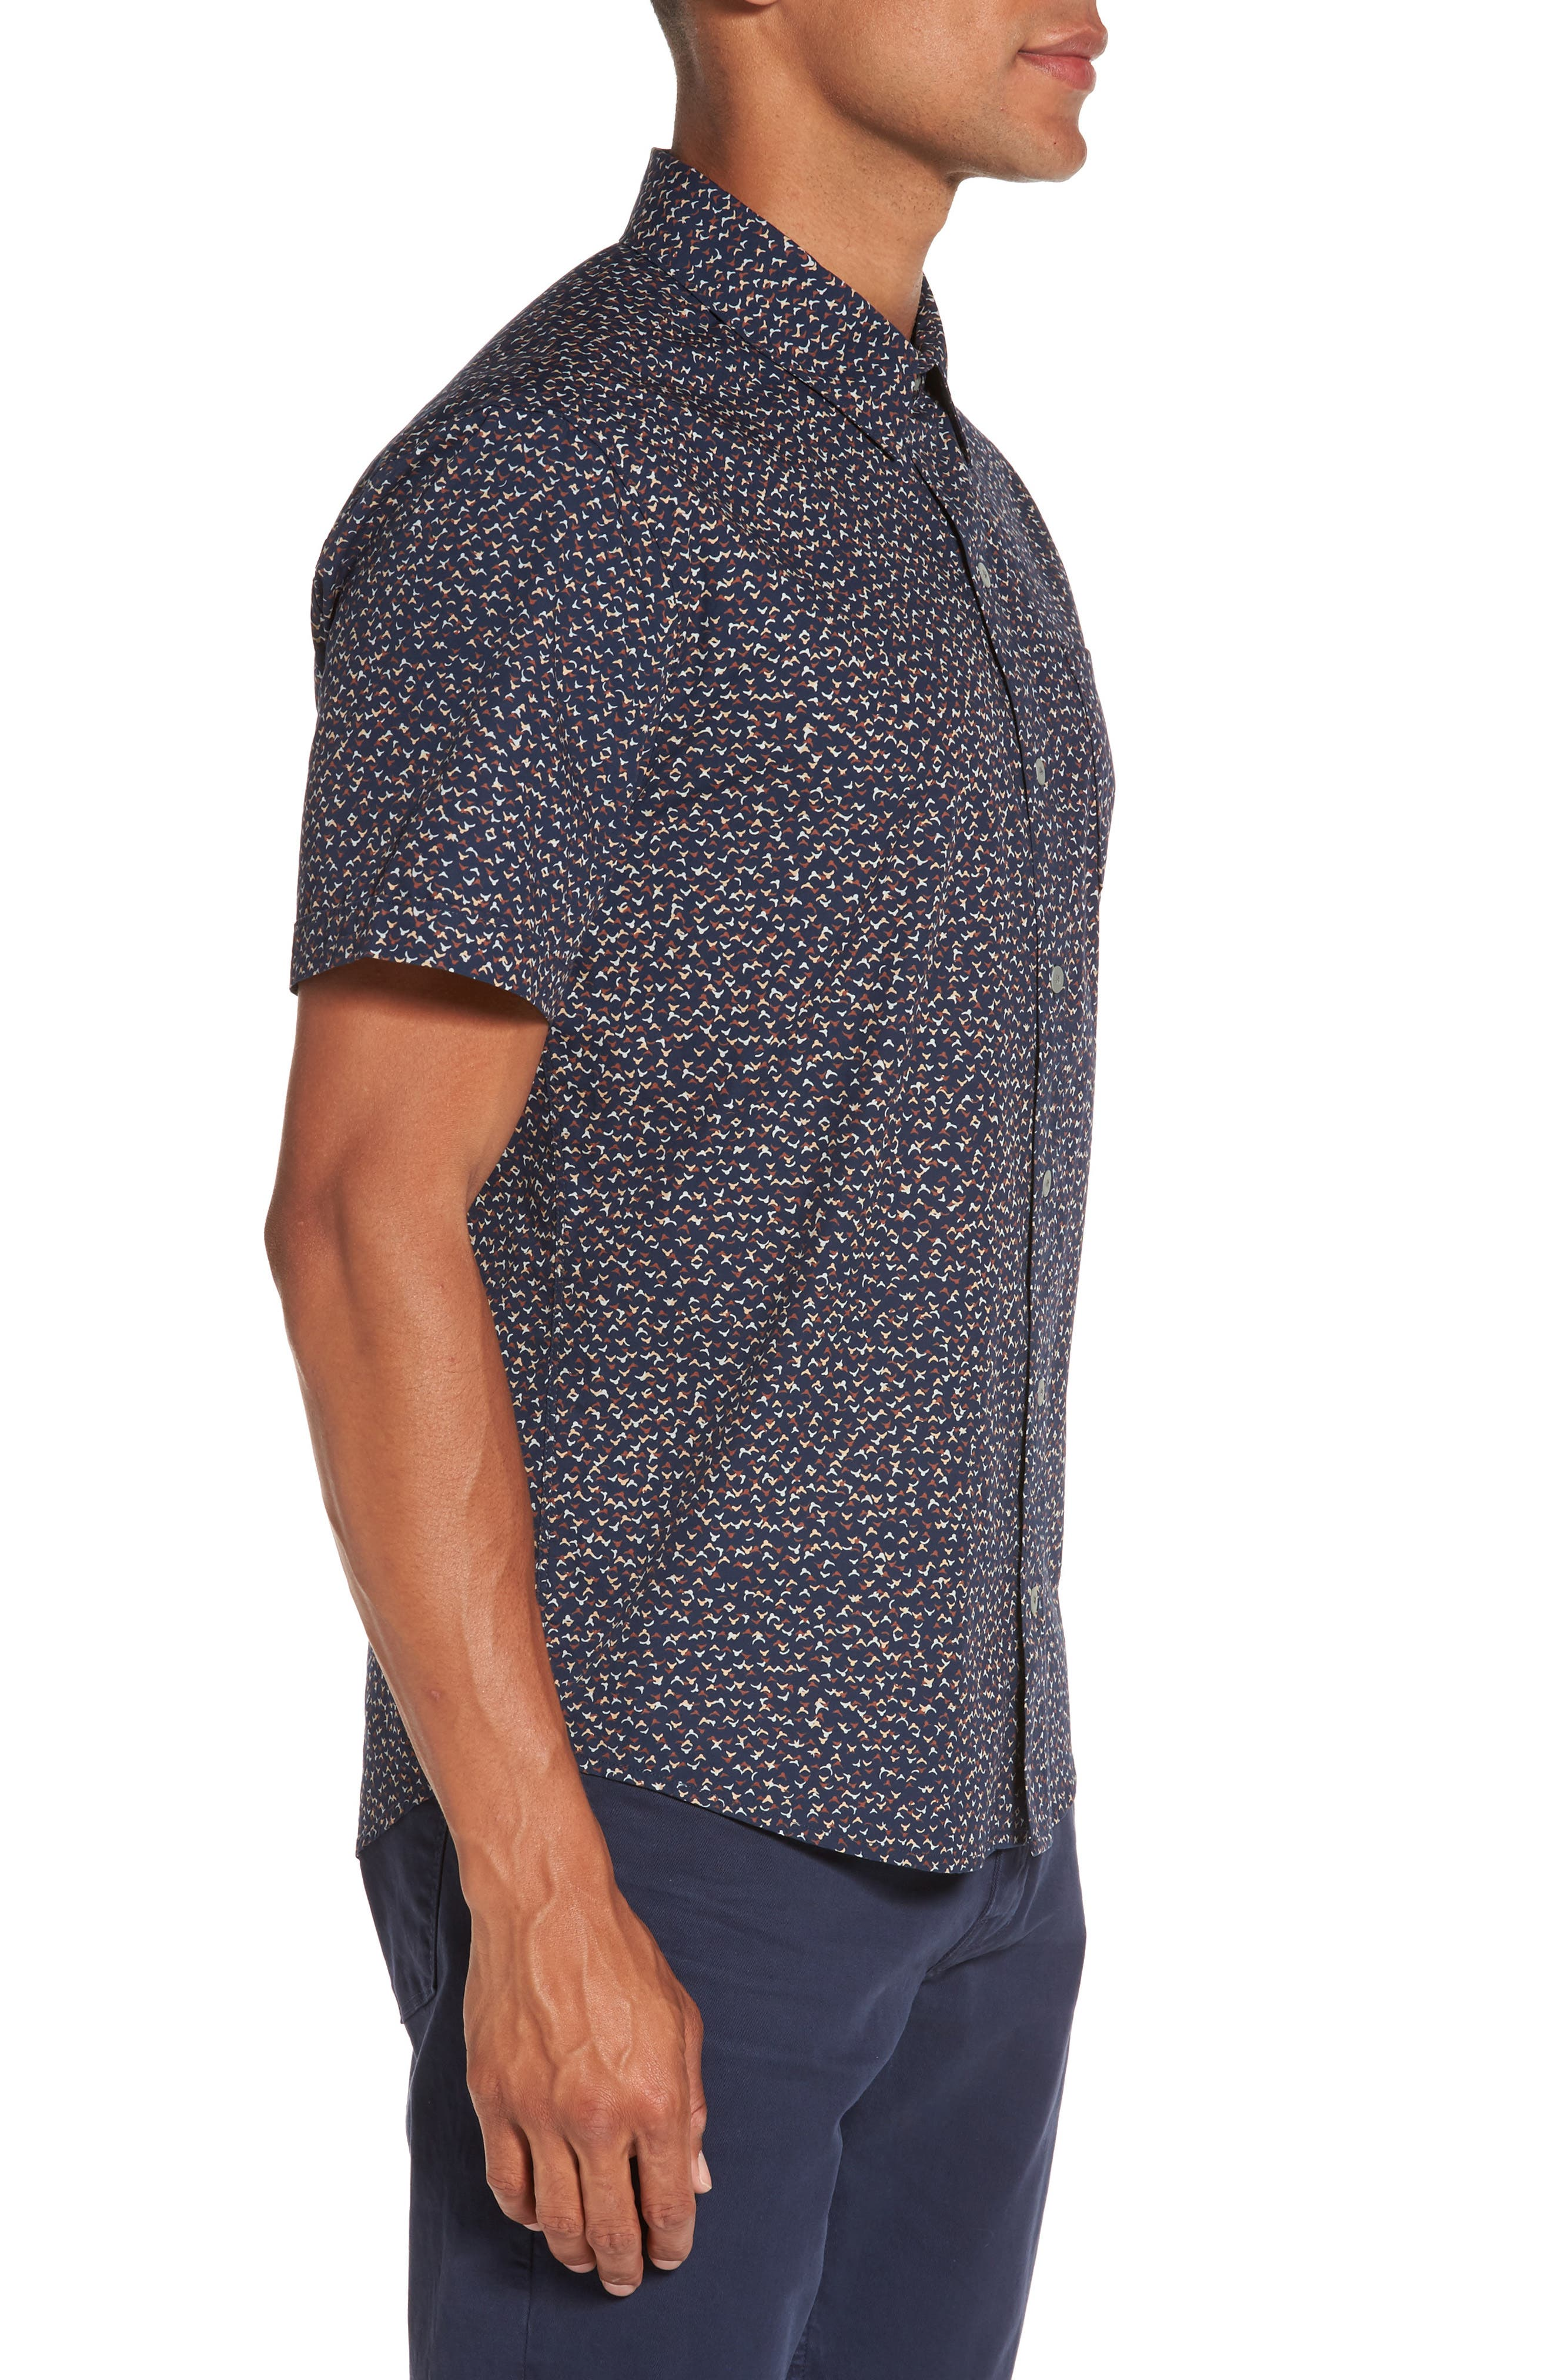 Becker Patterned Woven Shirt,                             Alternate thumbnail 3, color,                             400